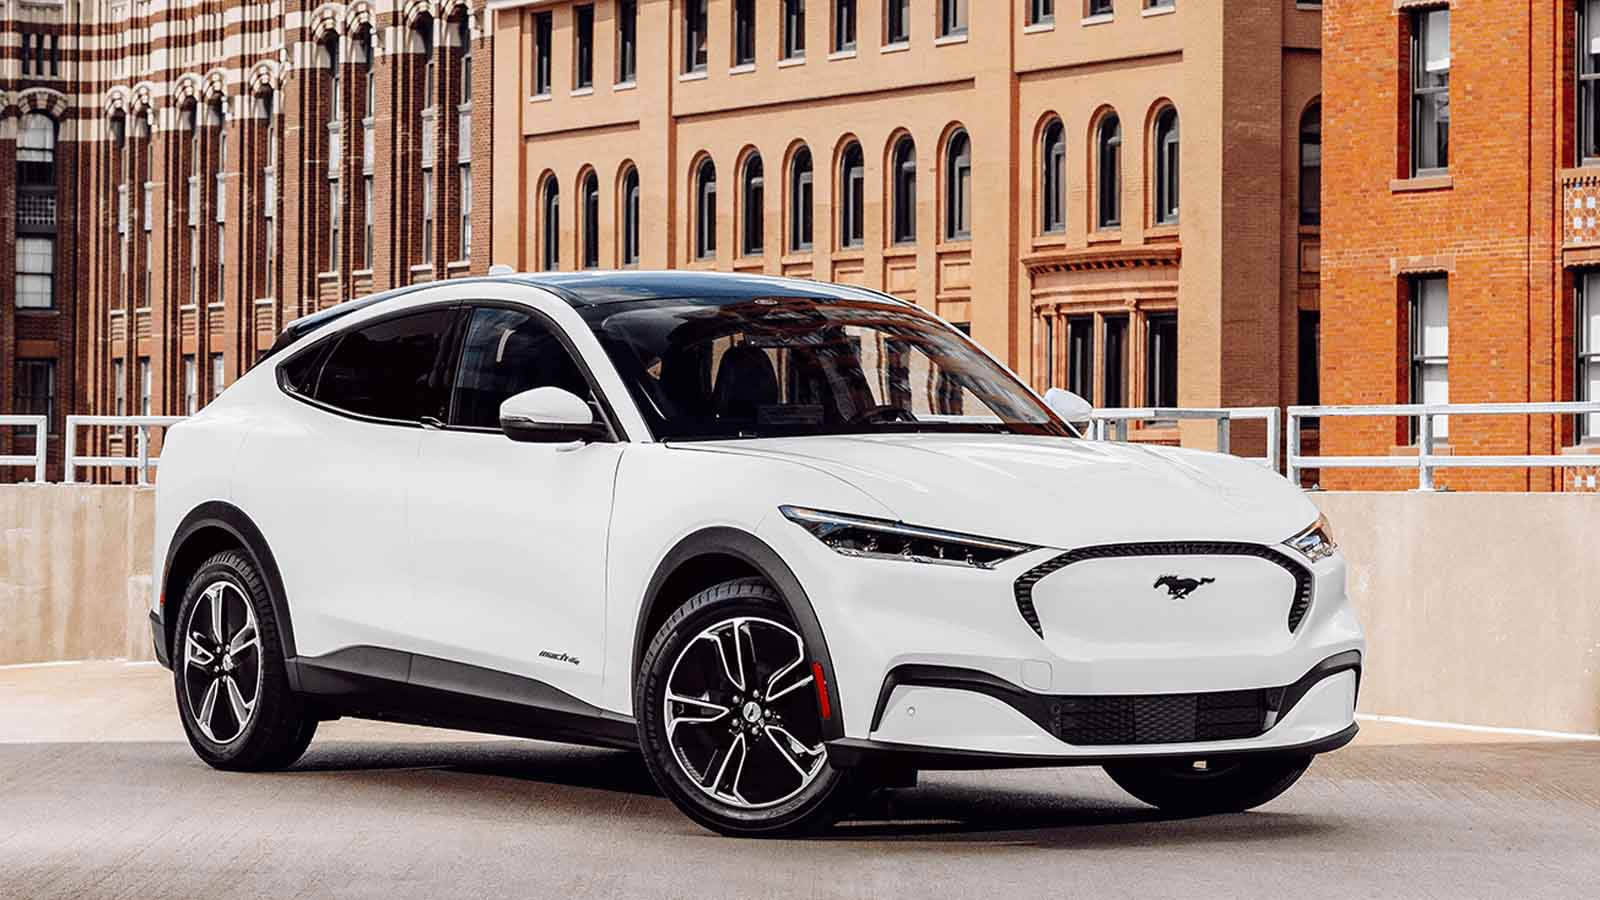 ford mustange mach-e electric vehicle